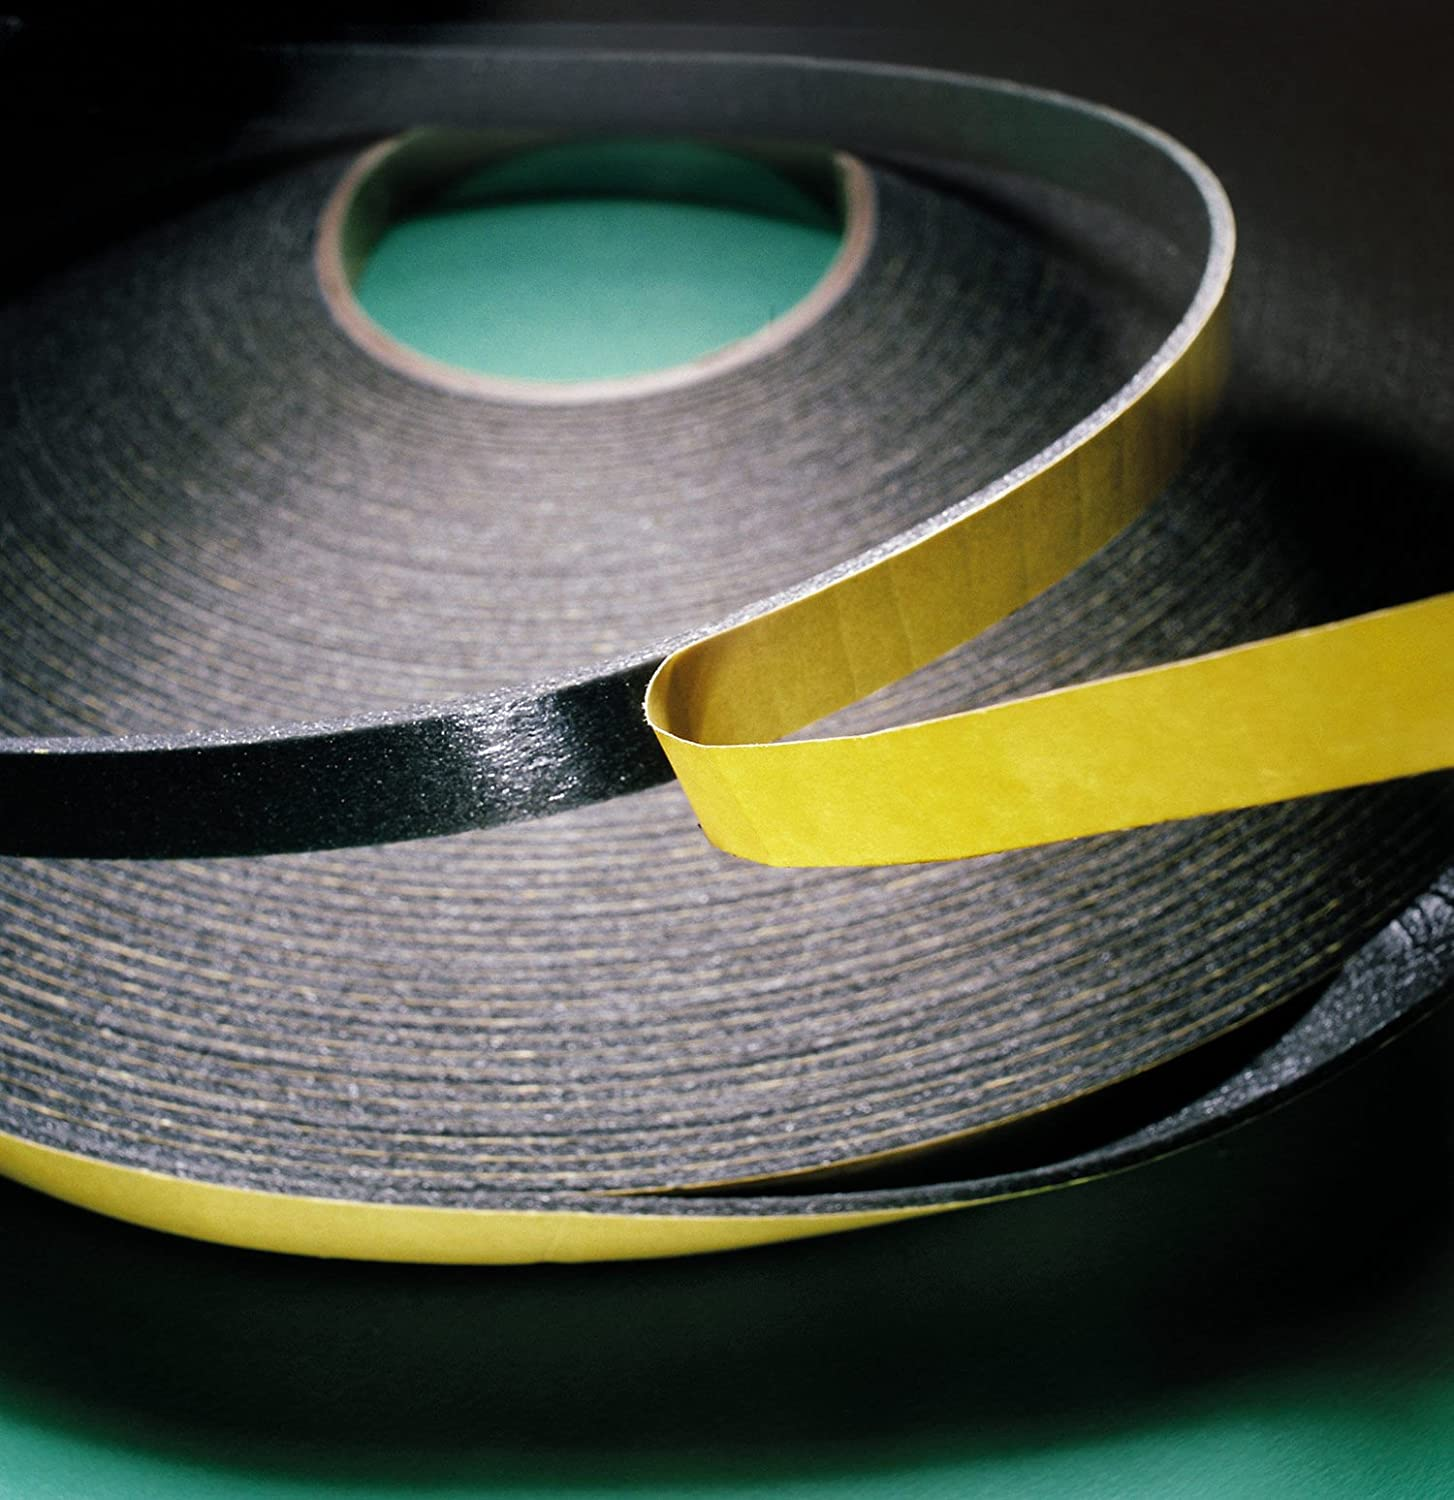 Security Glazing Tape (25m) - 2mm x 15mm - Black PAL